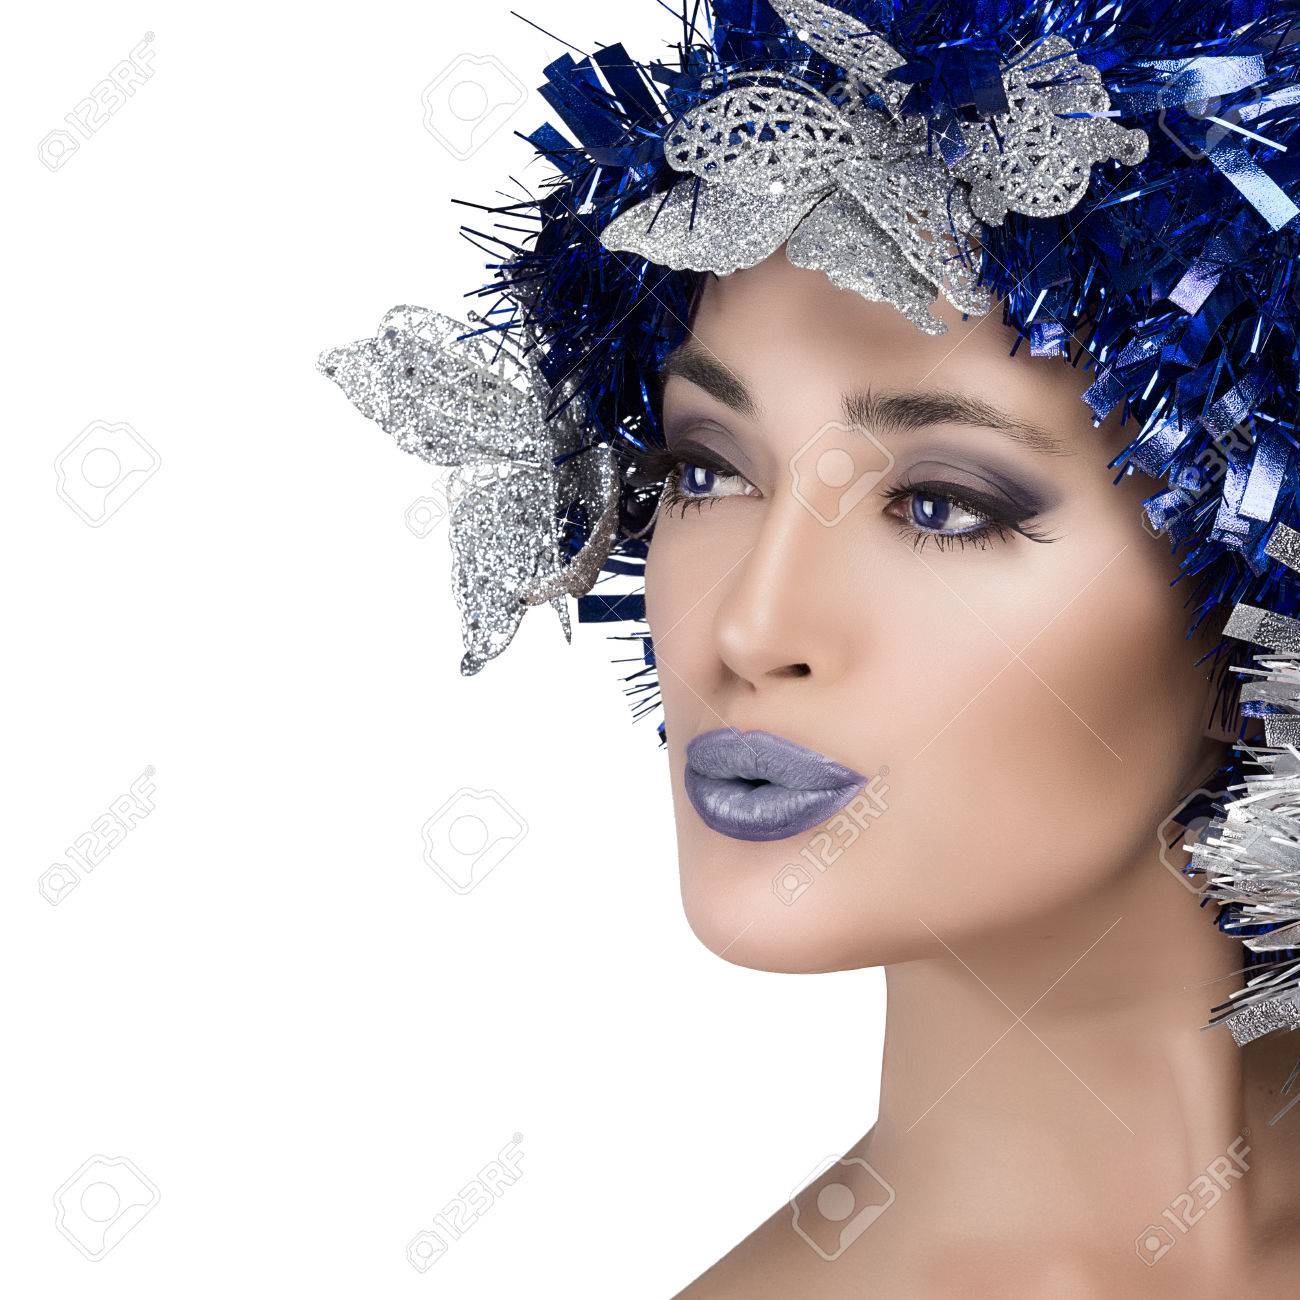 Beauty christmas girl with festive makeup in blue and silver isolated on white background Stock Photo - 24265542